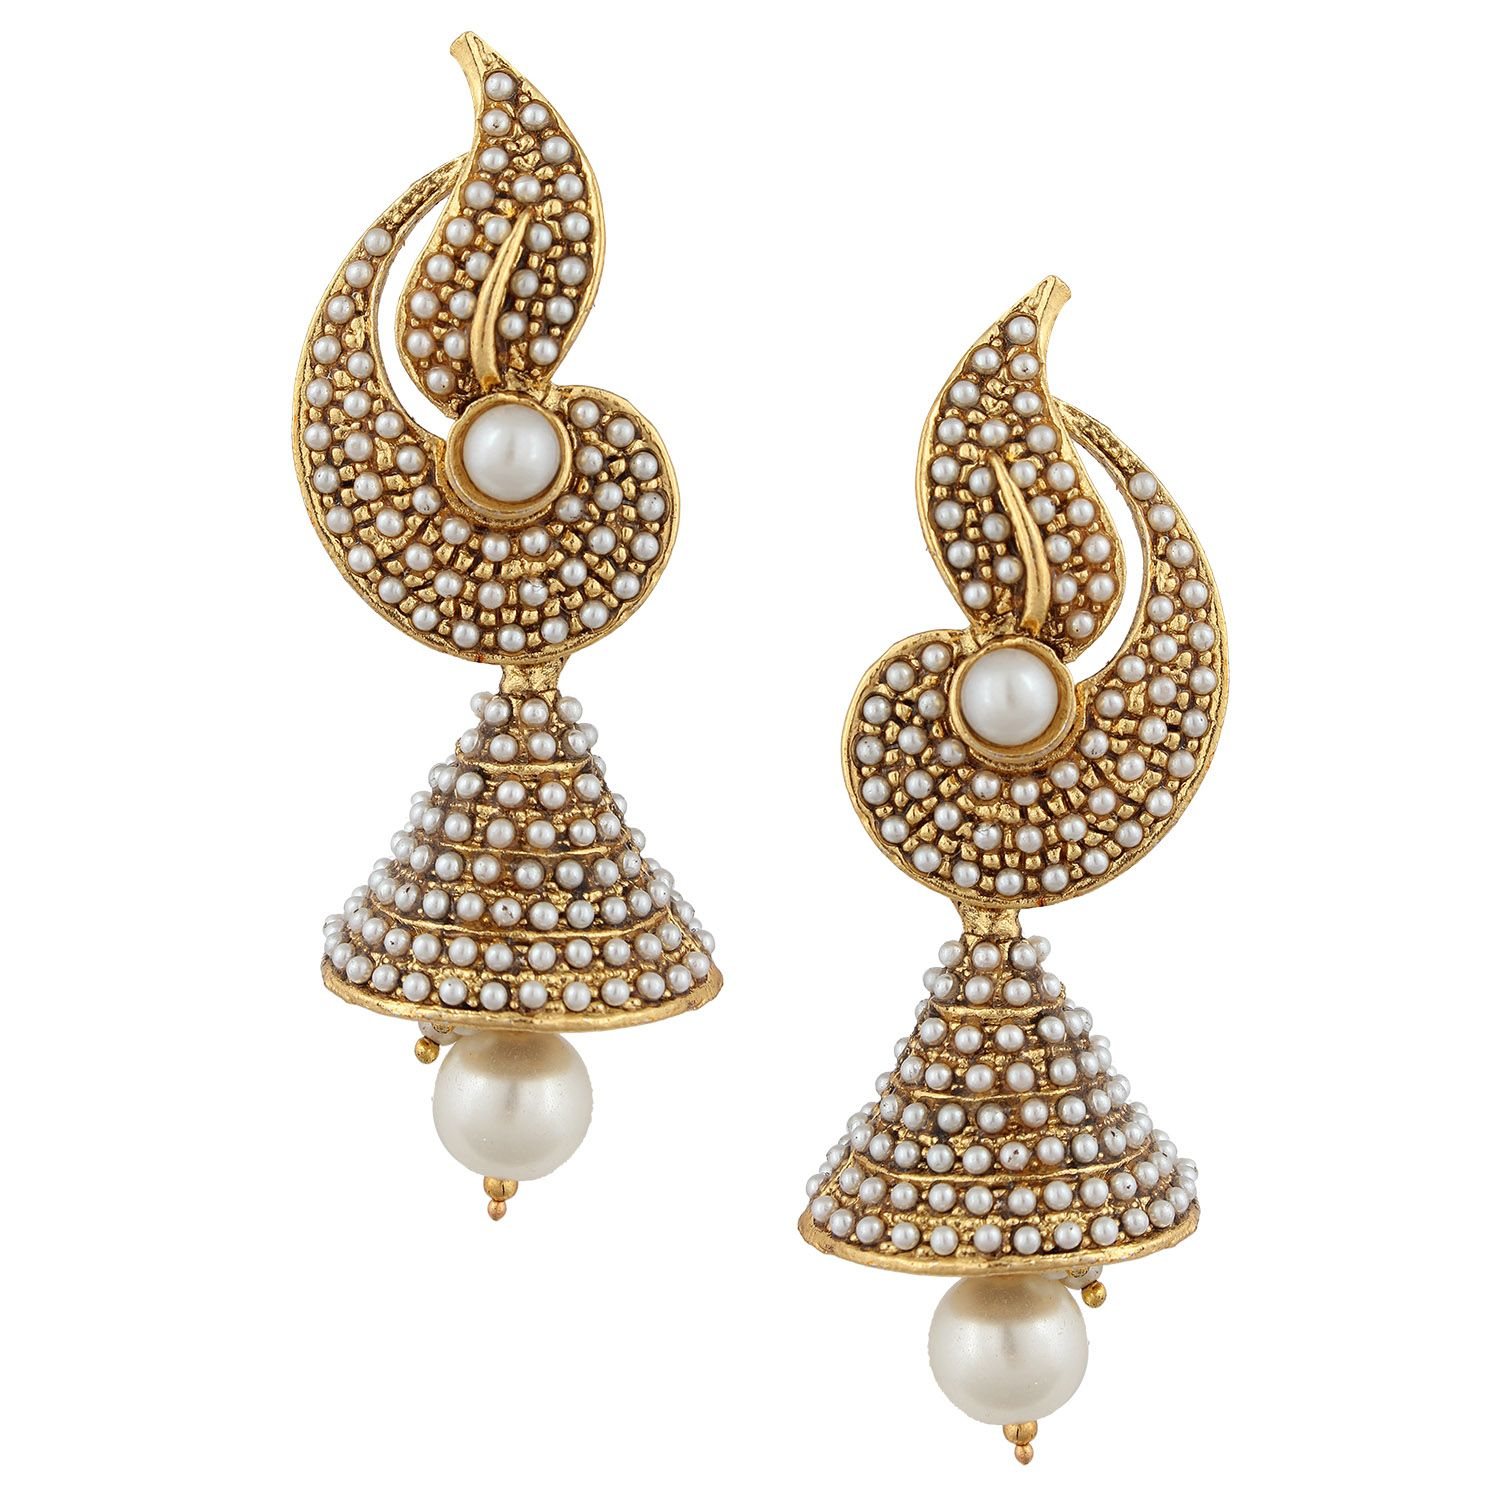 jhumka earrings designs in 2017 sari info